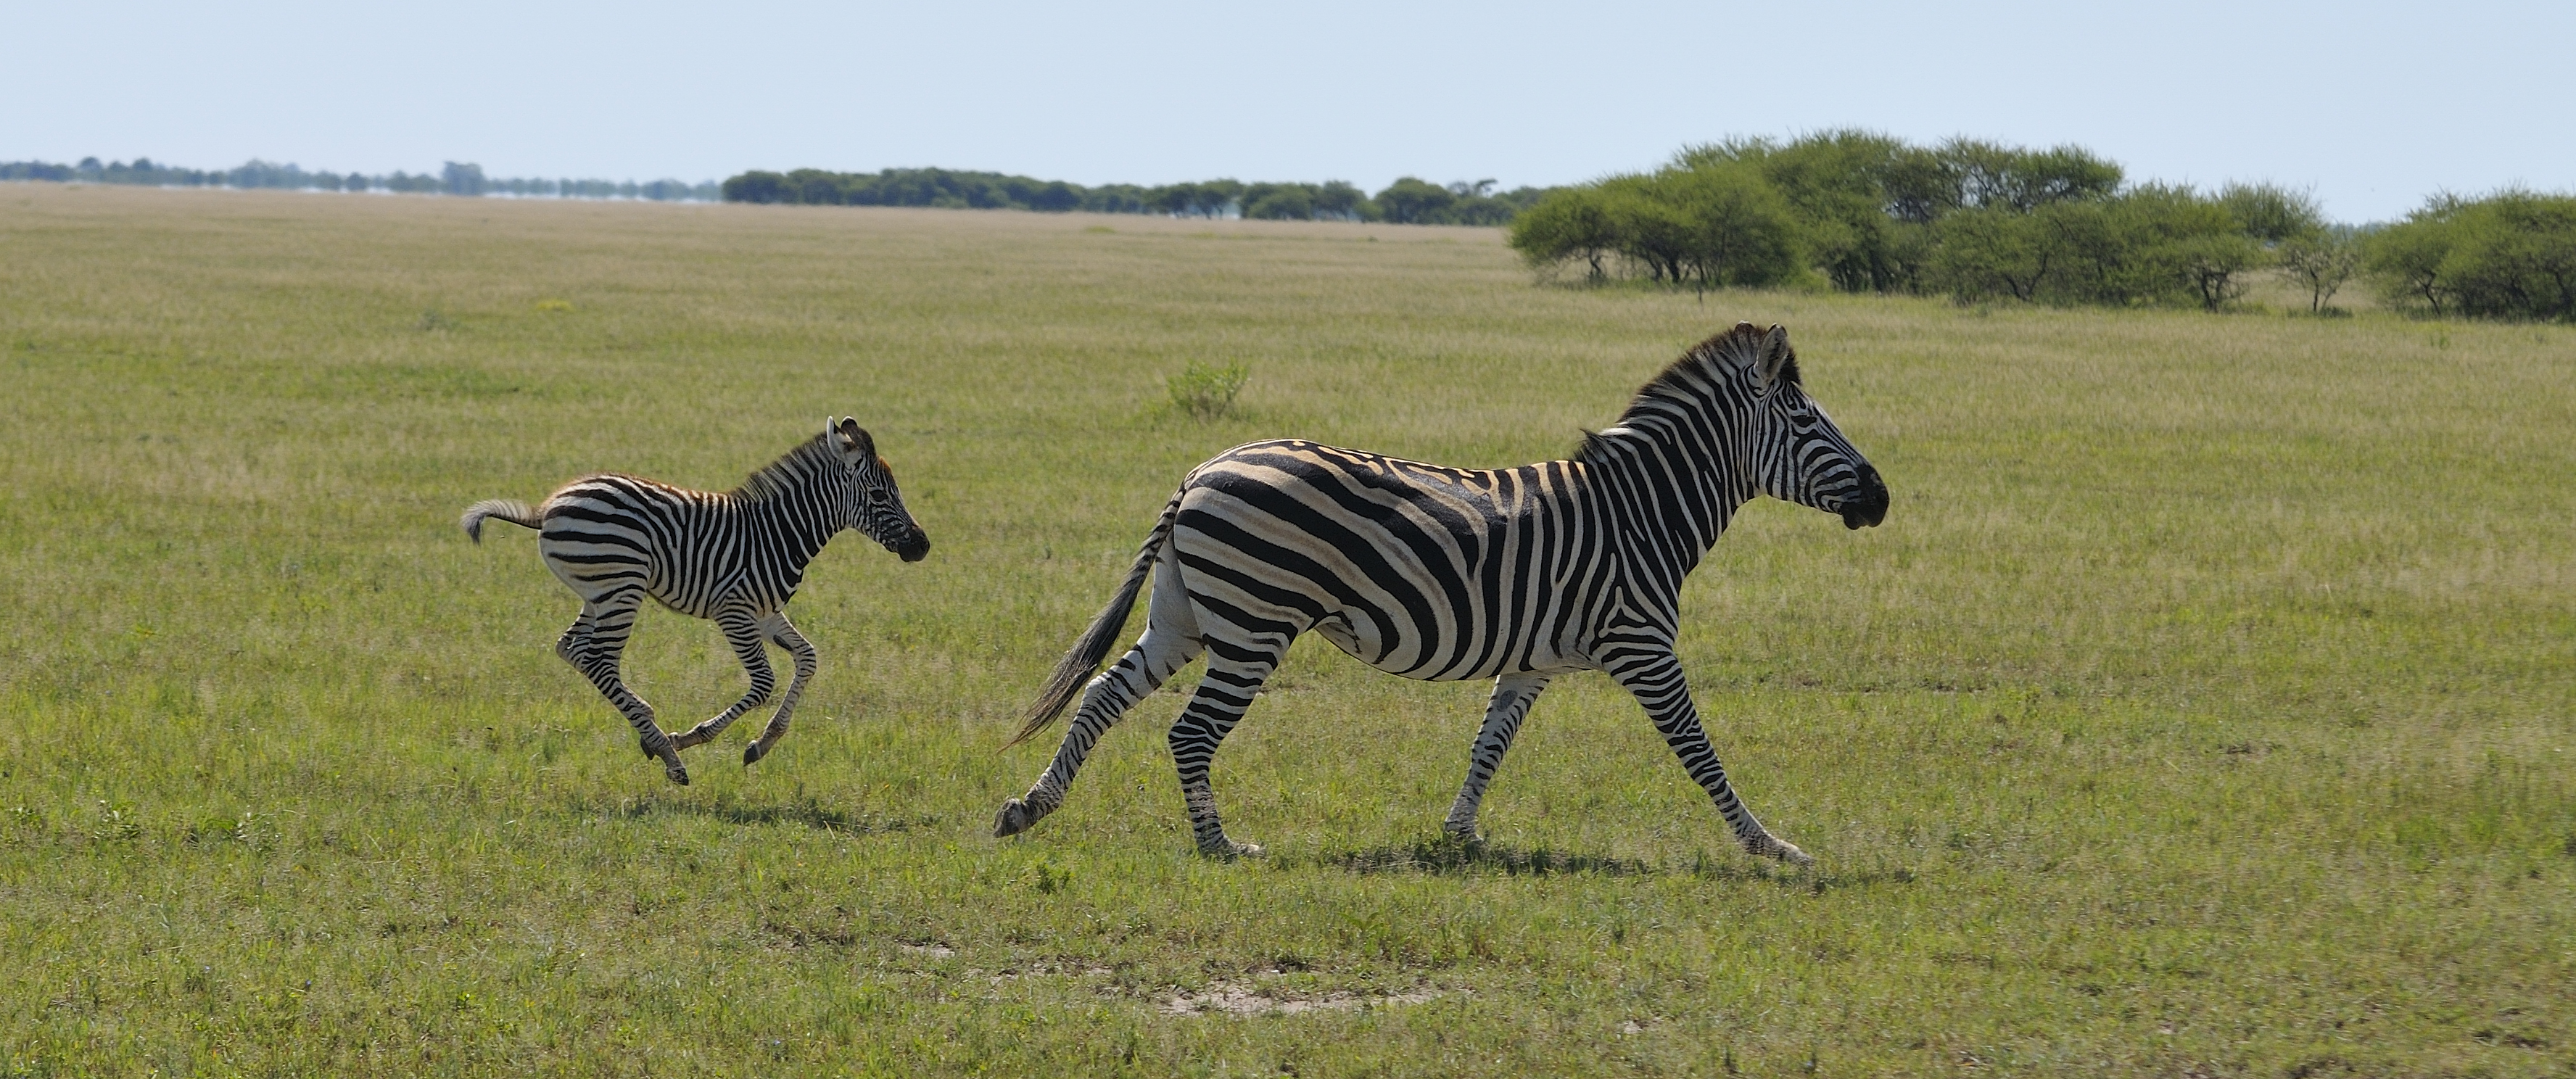 zebra mother and child in flight